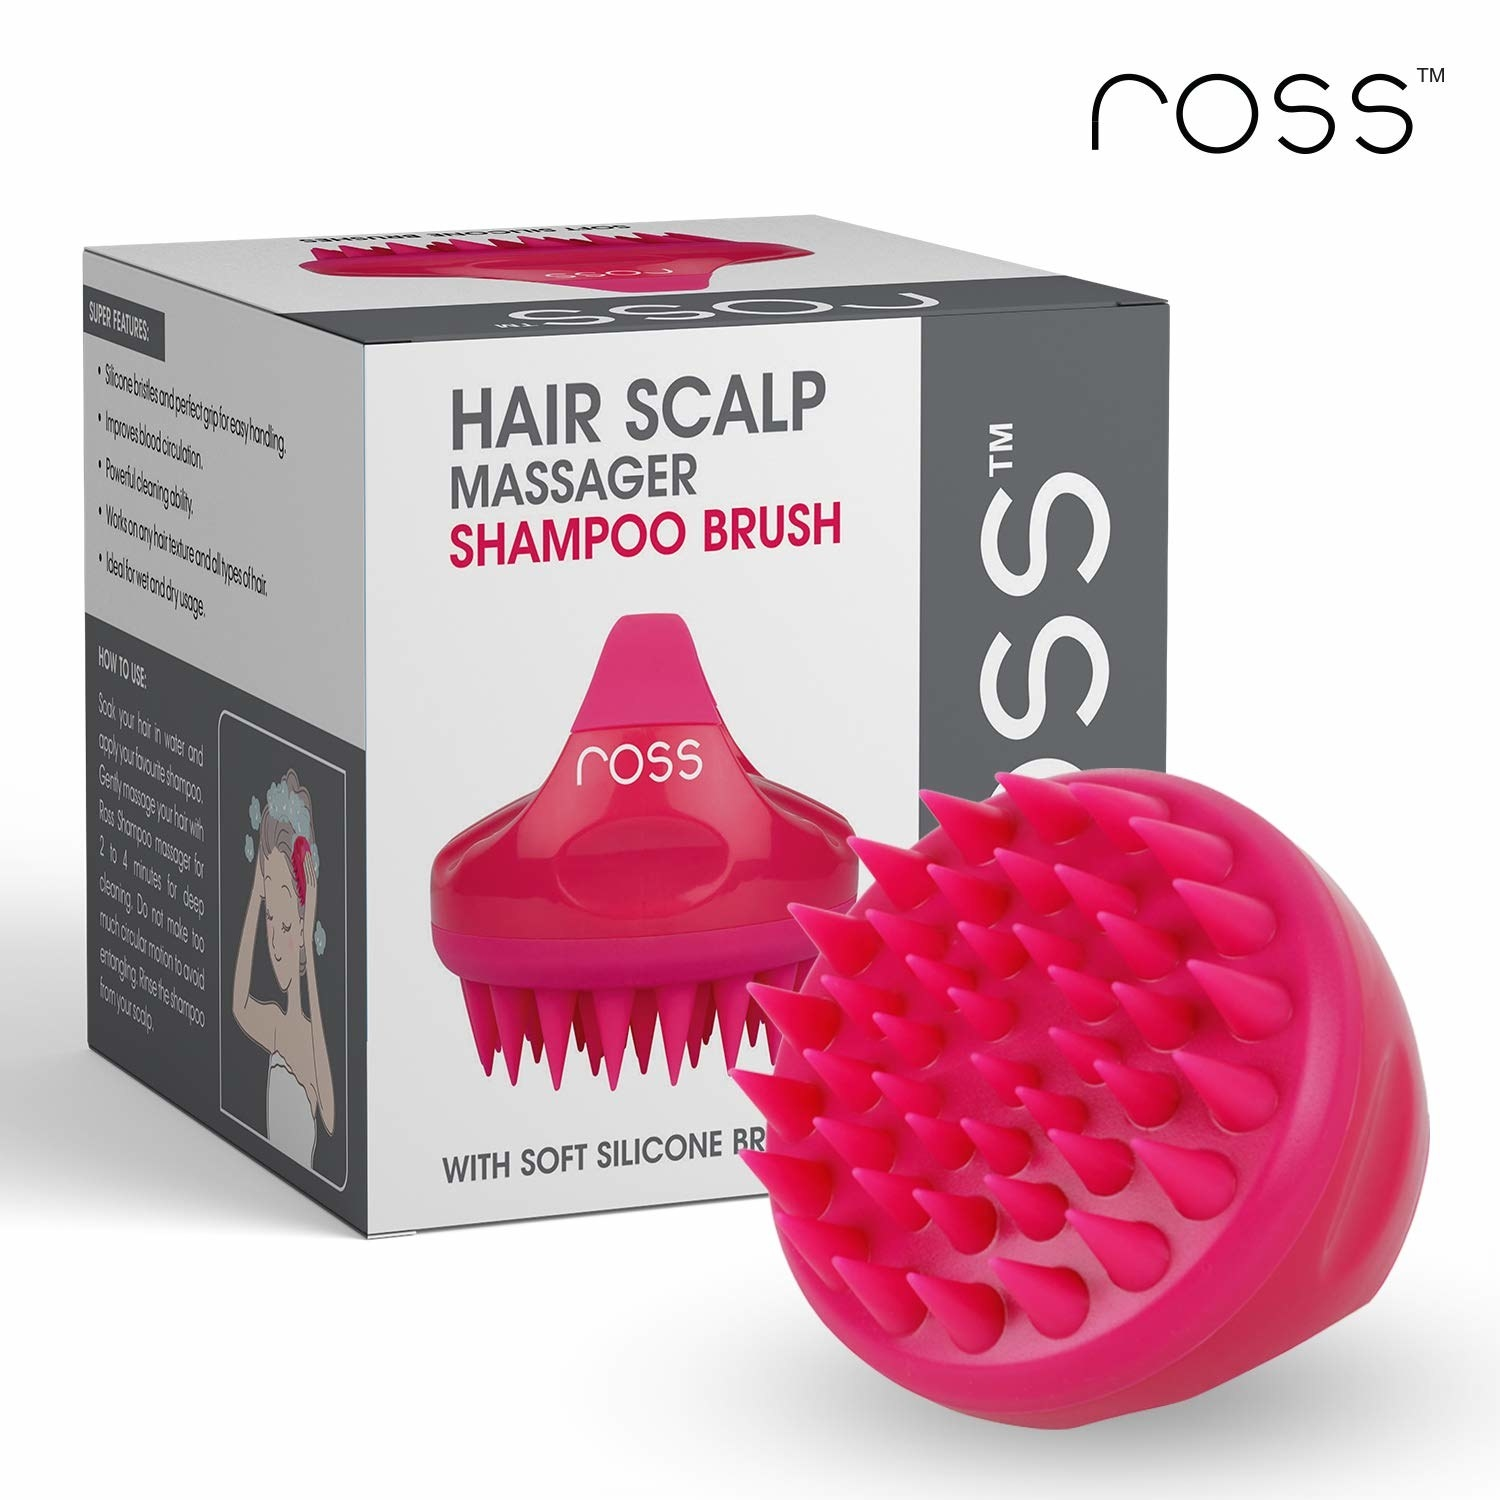 Packaging of the shampoo brush with the brush itself